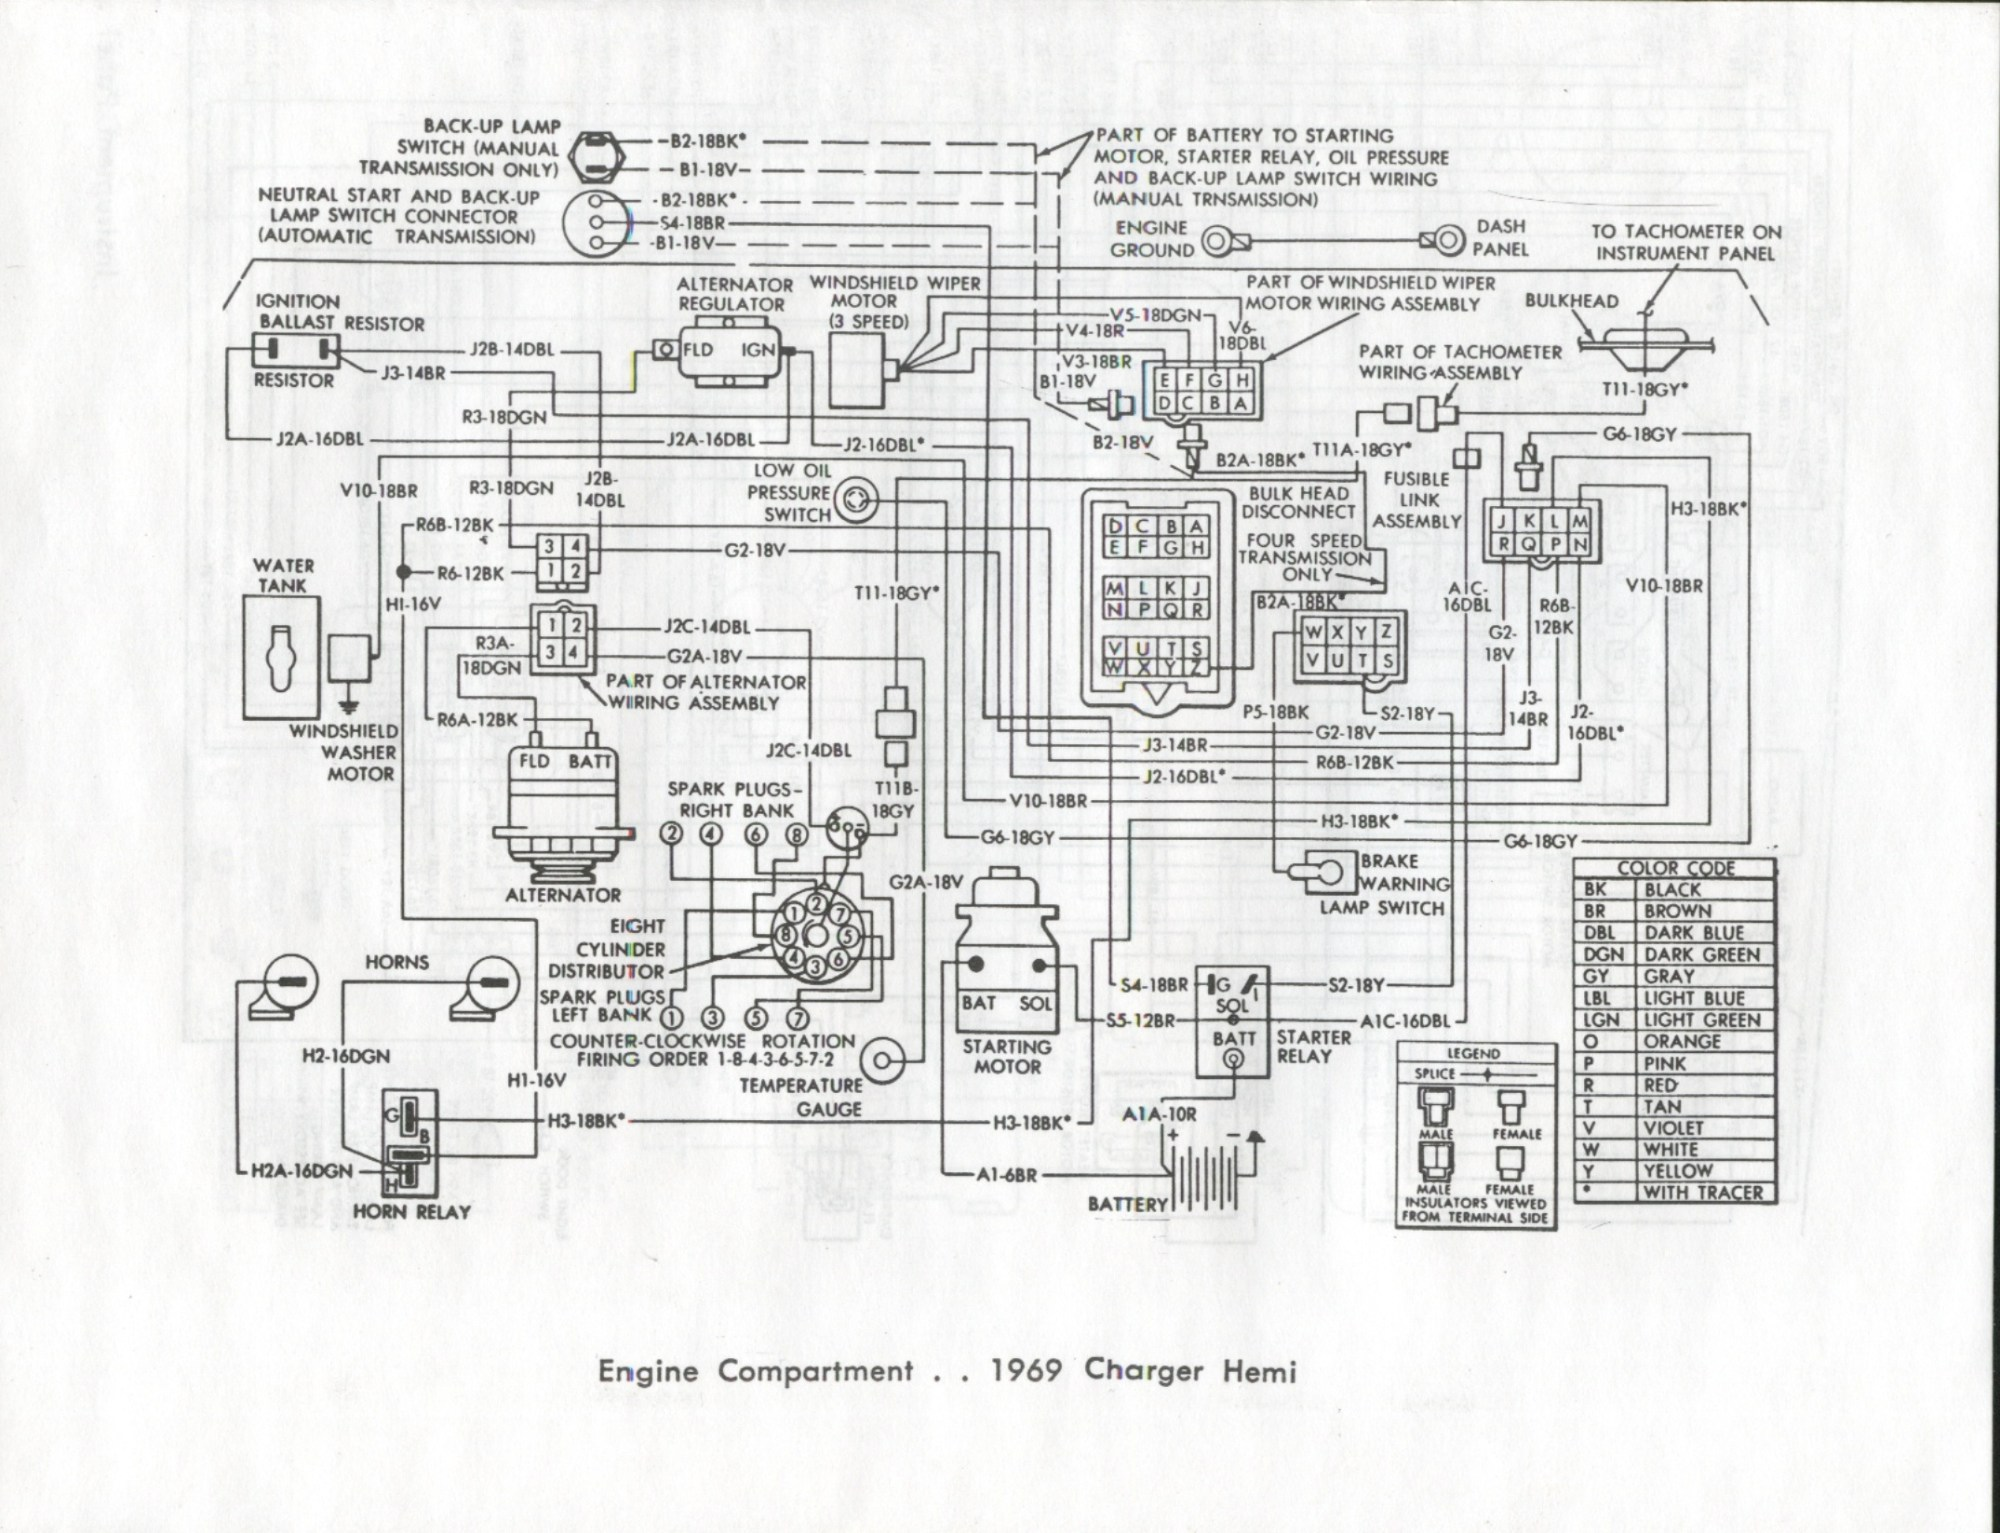 hight resolution of 1968 dodge charger ac wiring diagram simple wiring diagram rh 63 mara cujas de 1967 dodge dart wiring diagram 1972 dodge dart wiring diagram